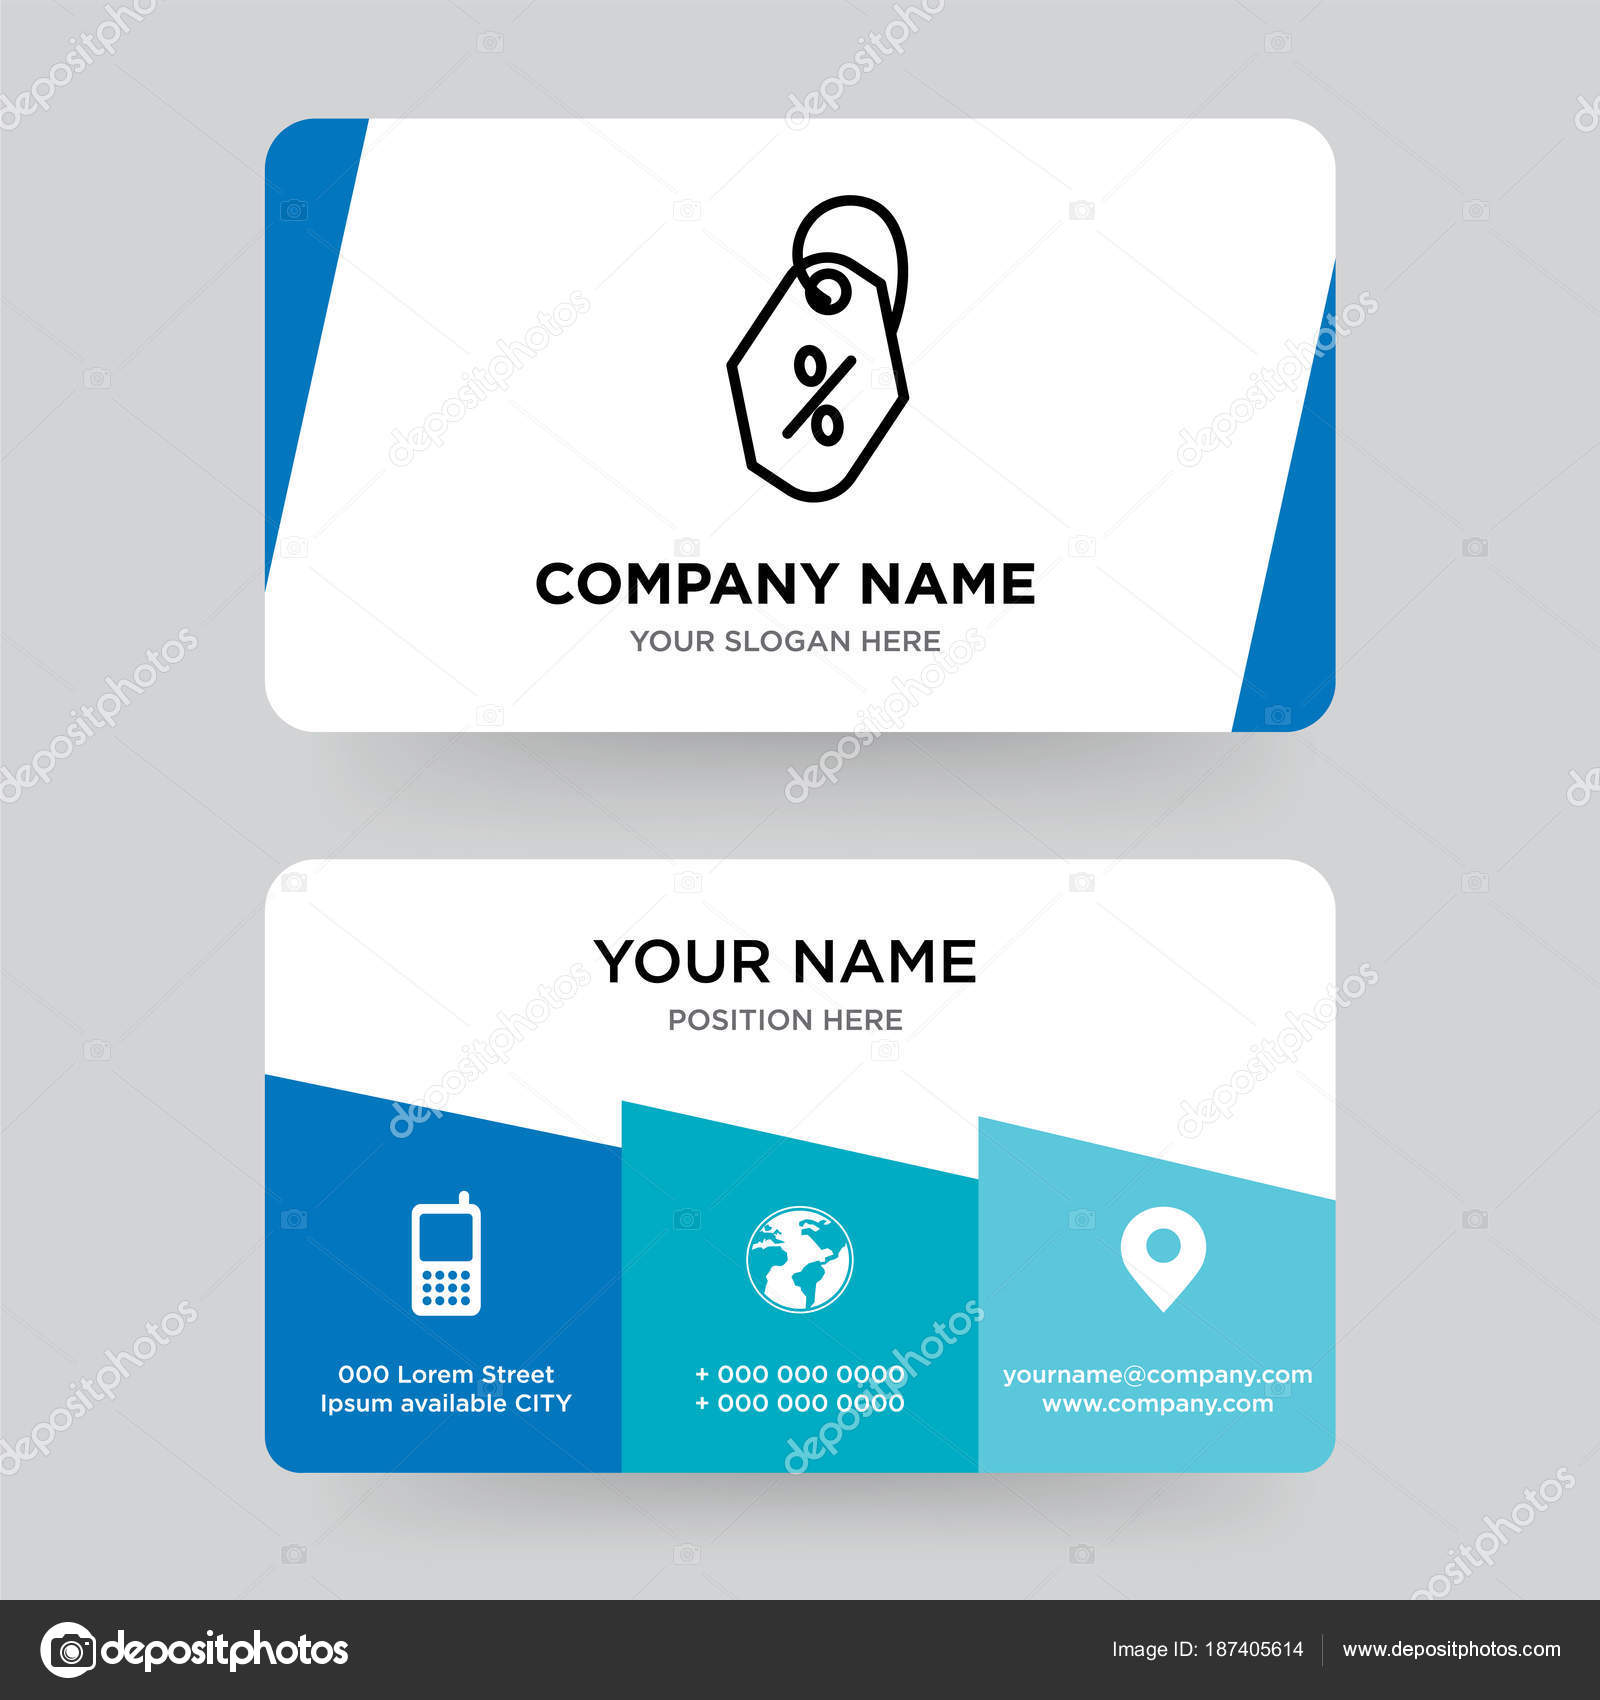 Price tag business card design template visiting for your compa price tag business card design template visiting for your compa stock vector colourmoves